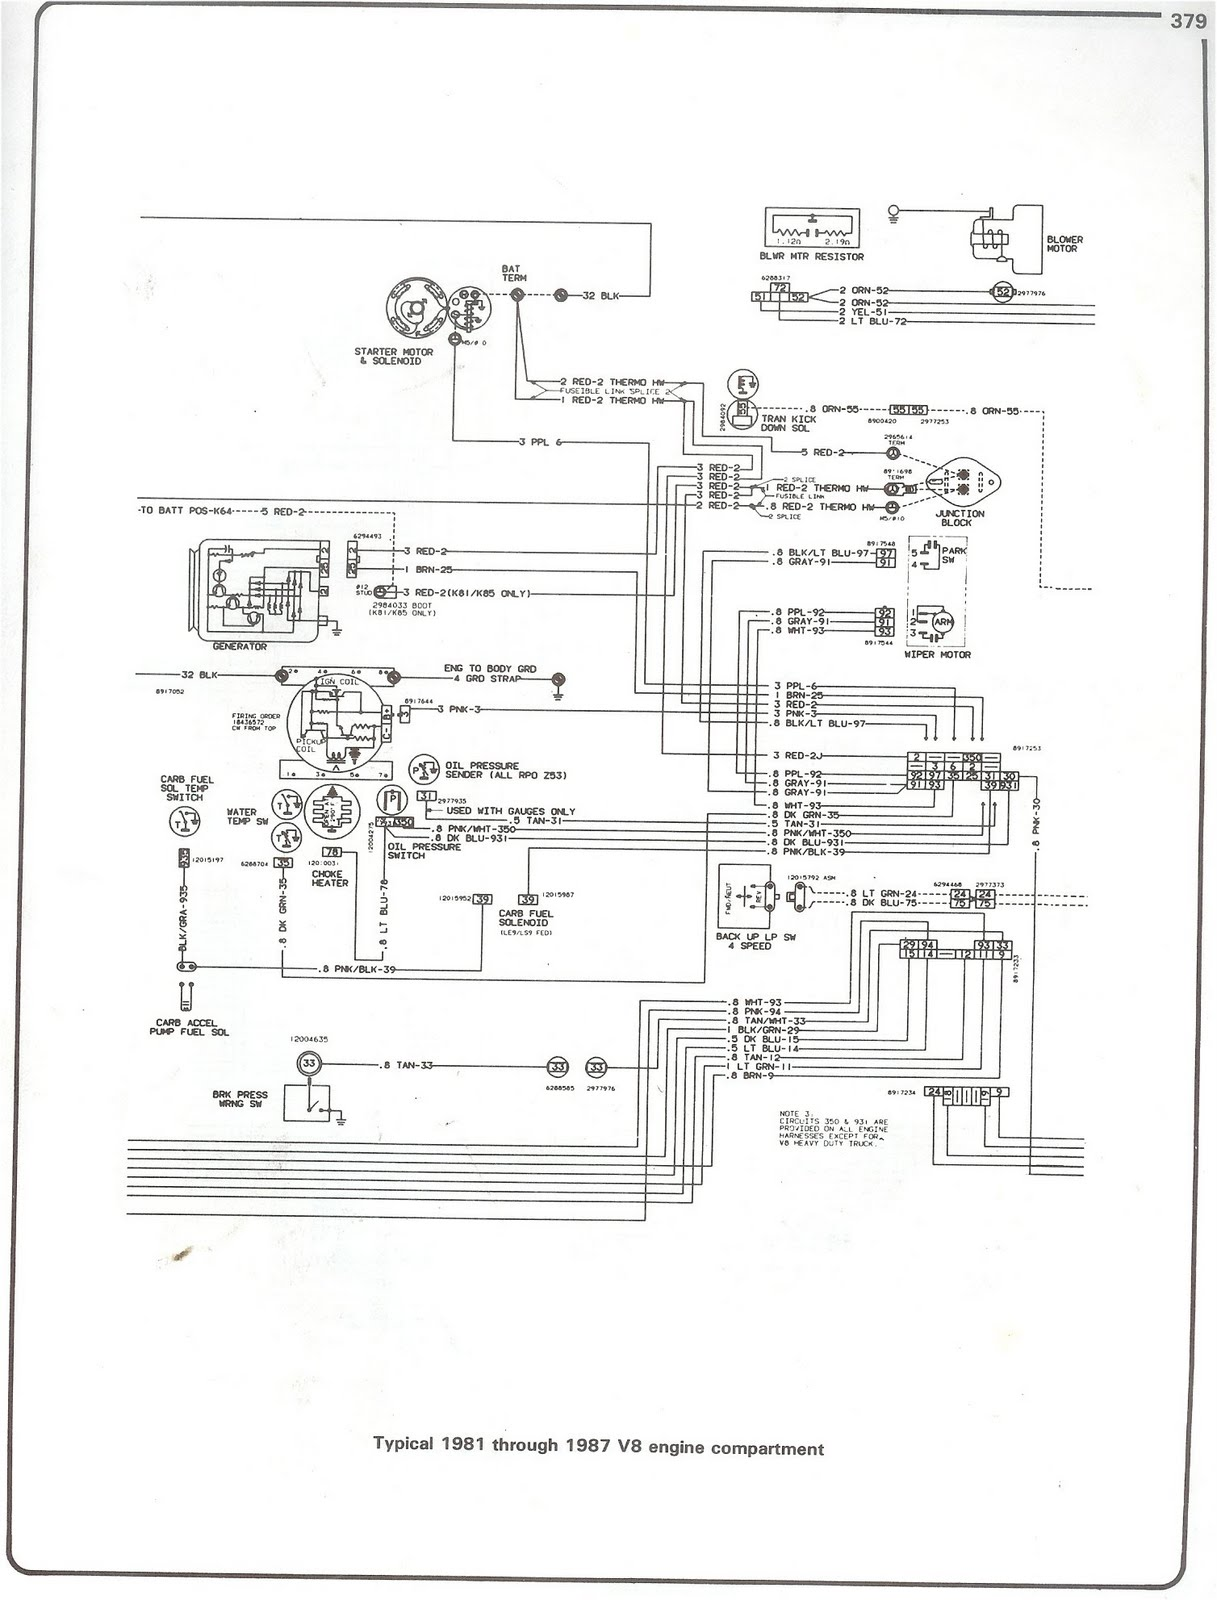 free auto wiring diagram 1981 1987 chevrolet v8 truck 1981 chevy c10 radio wiring diagram 1981 c10 engine wiring diagram